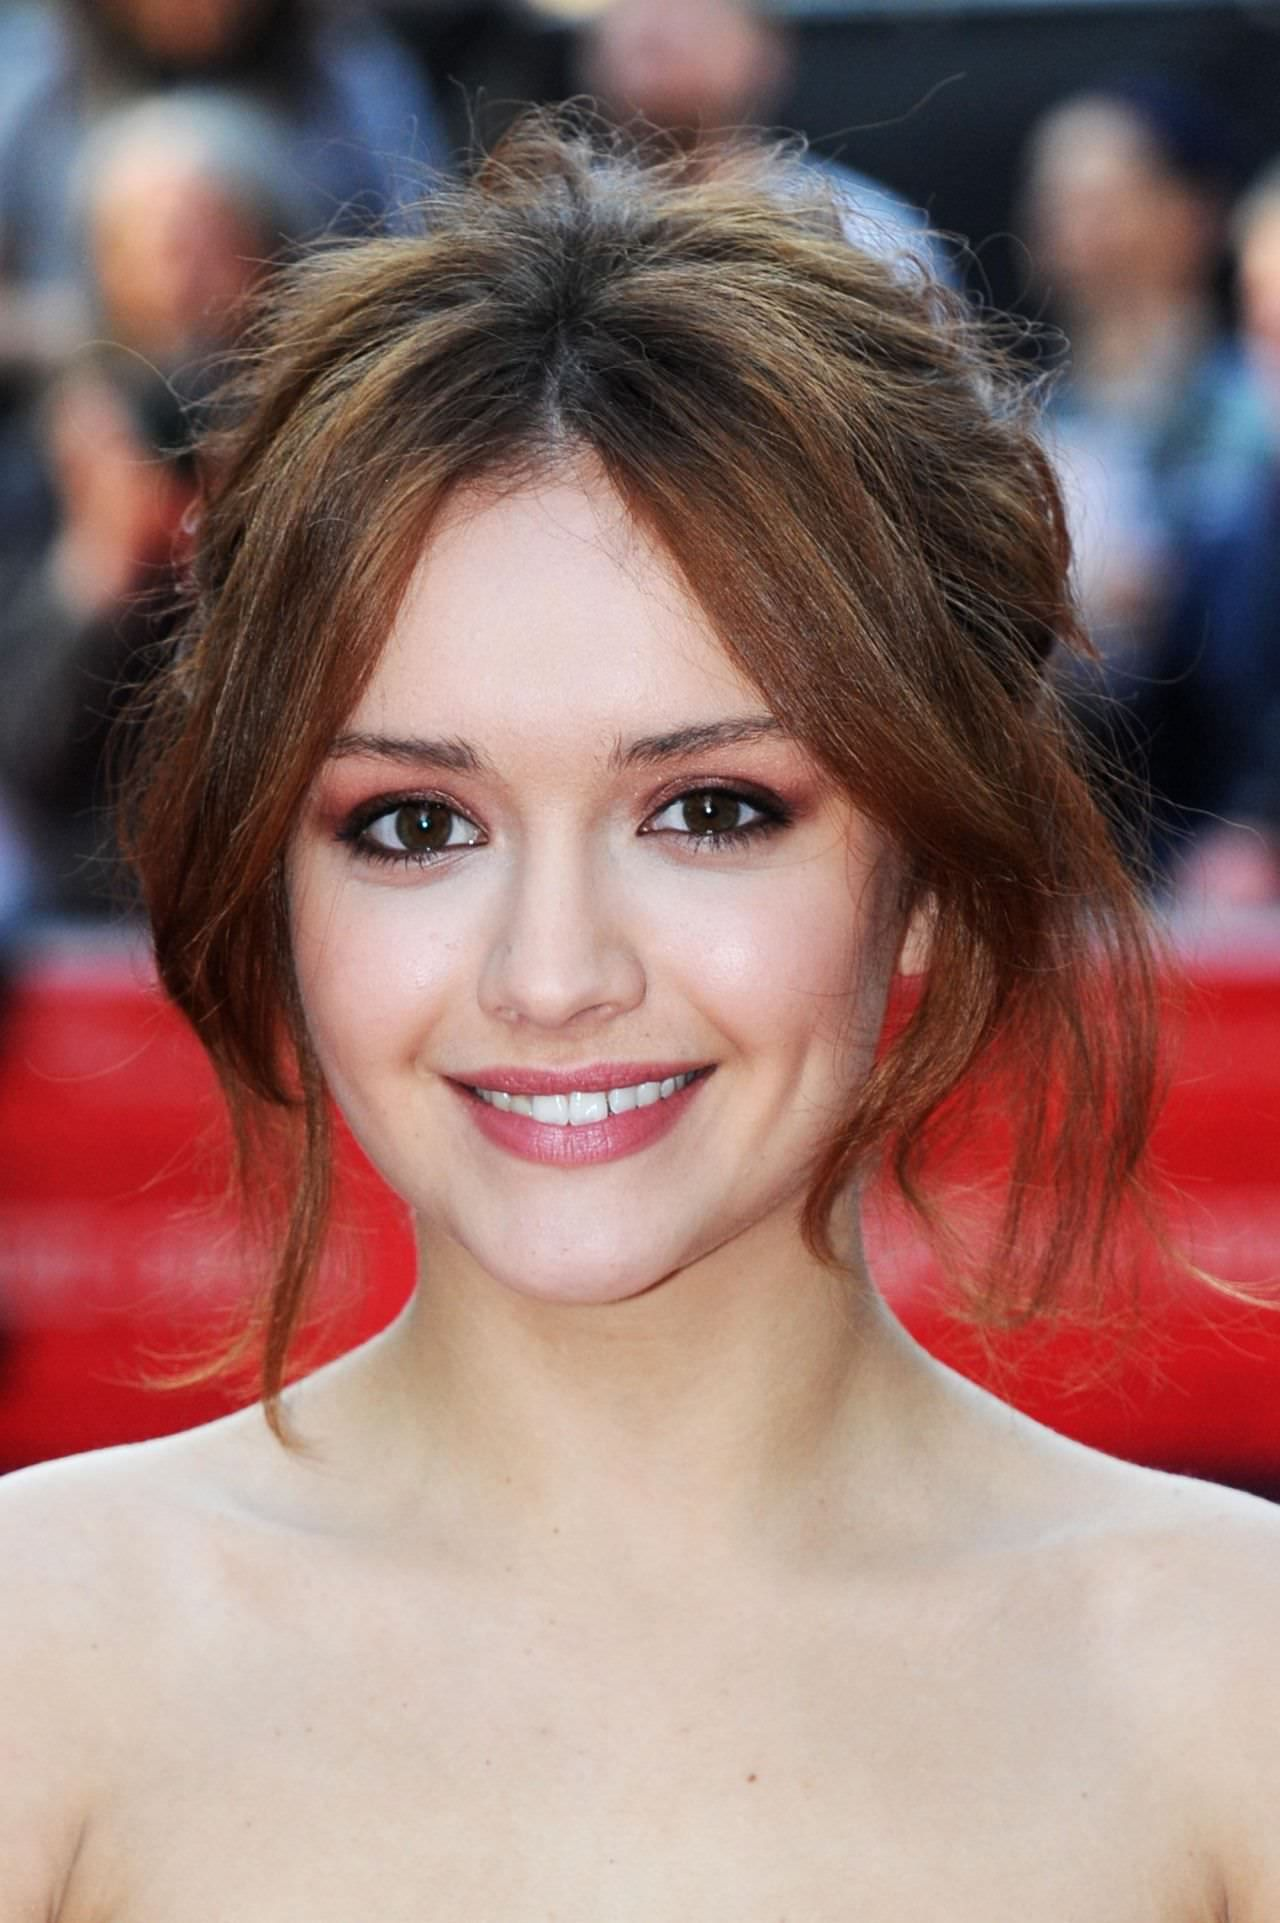 Selfie Olivia Cooke nude photos 2019